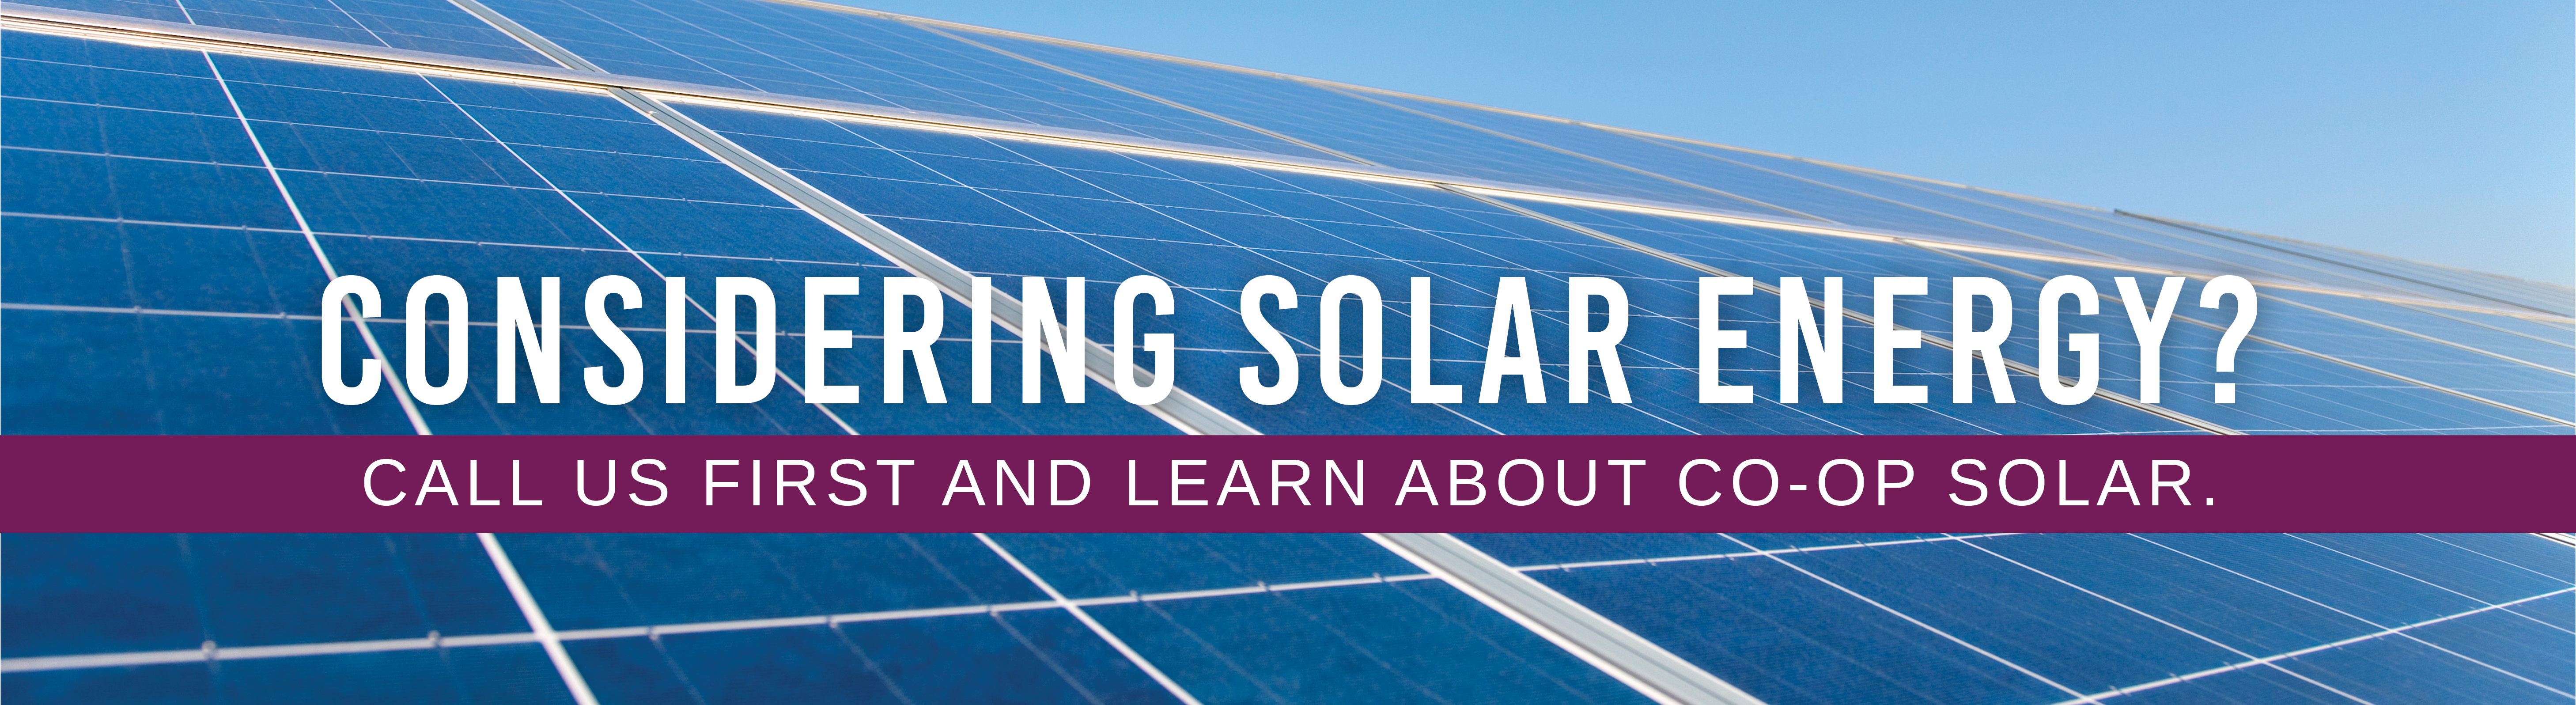 Are you considering solar energy?